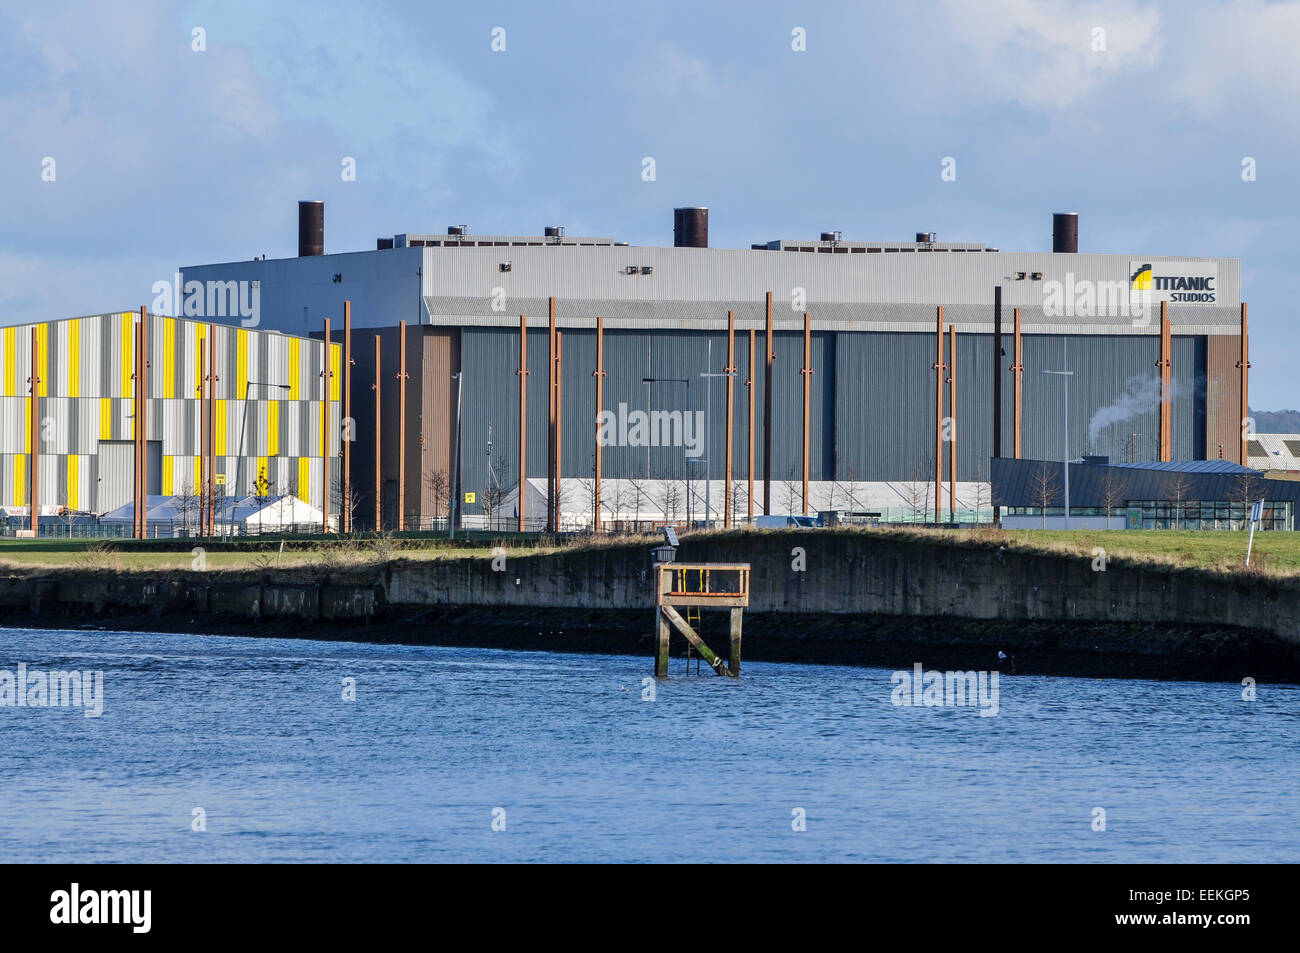 Titanic Film Studios Principle Location For A Number Of Hollywood